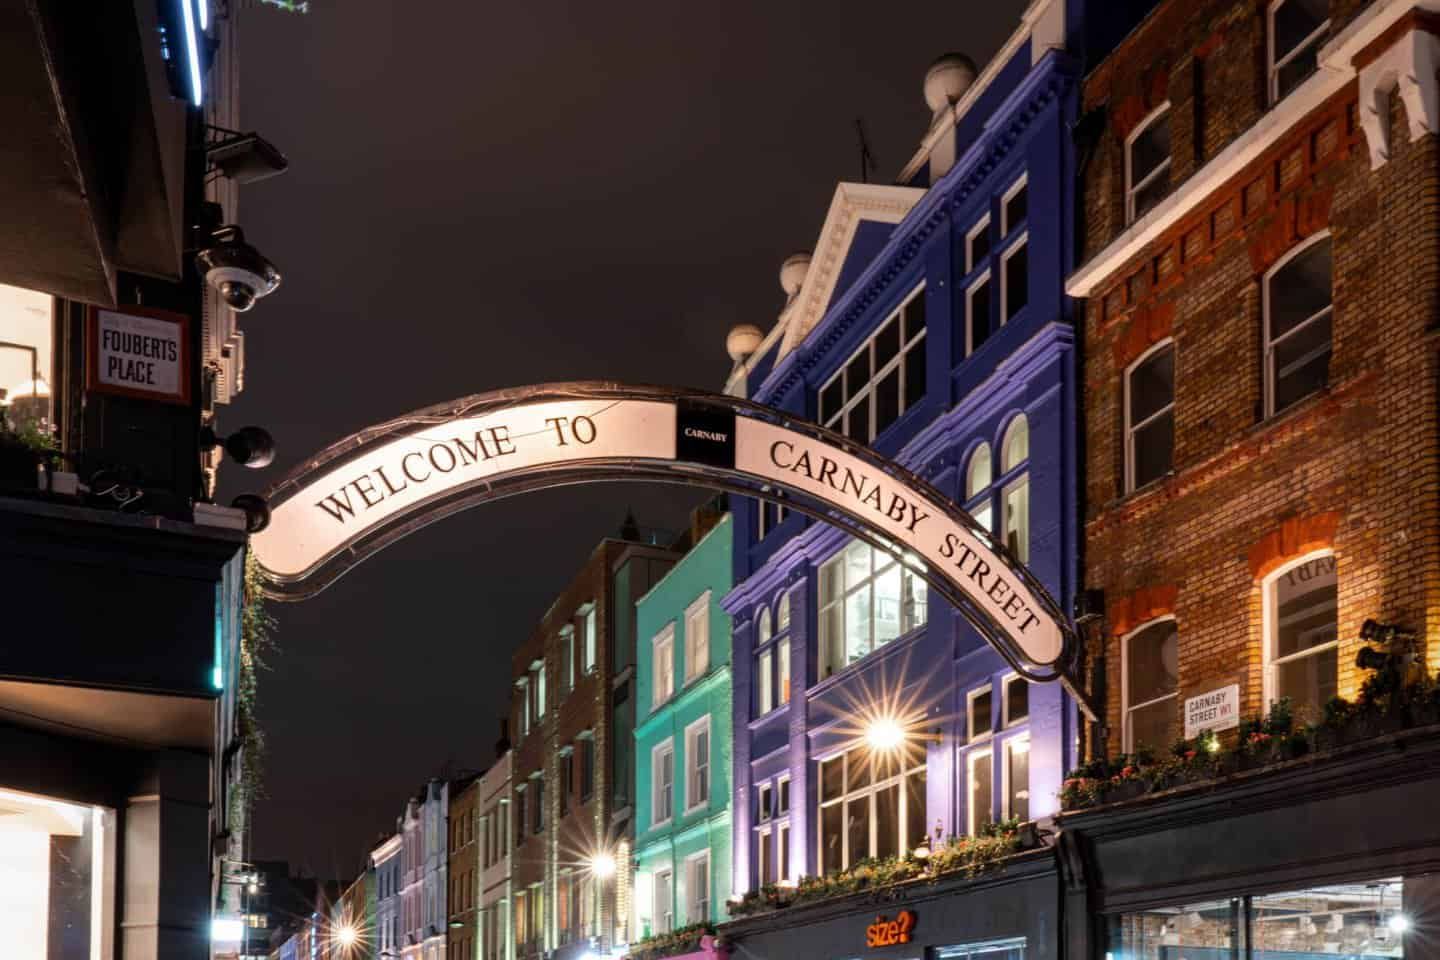 Colourful Carnaby Street famous road in London for shopping